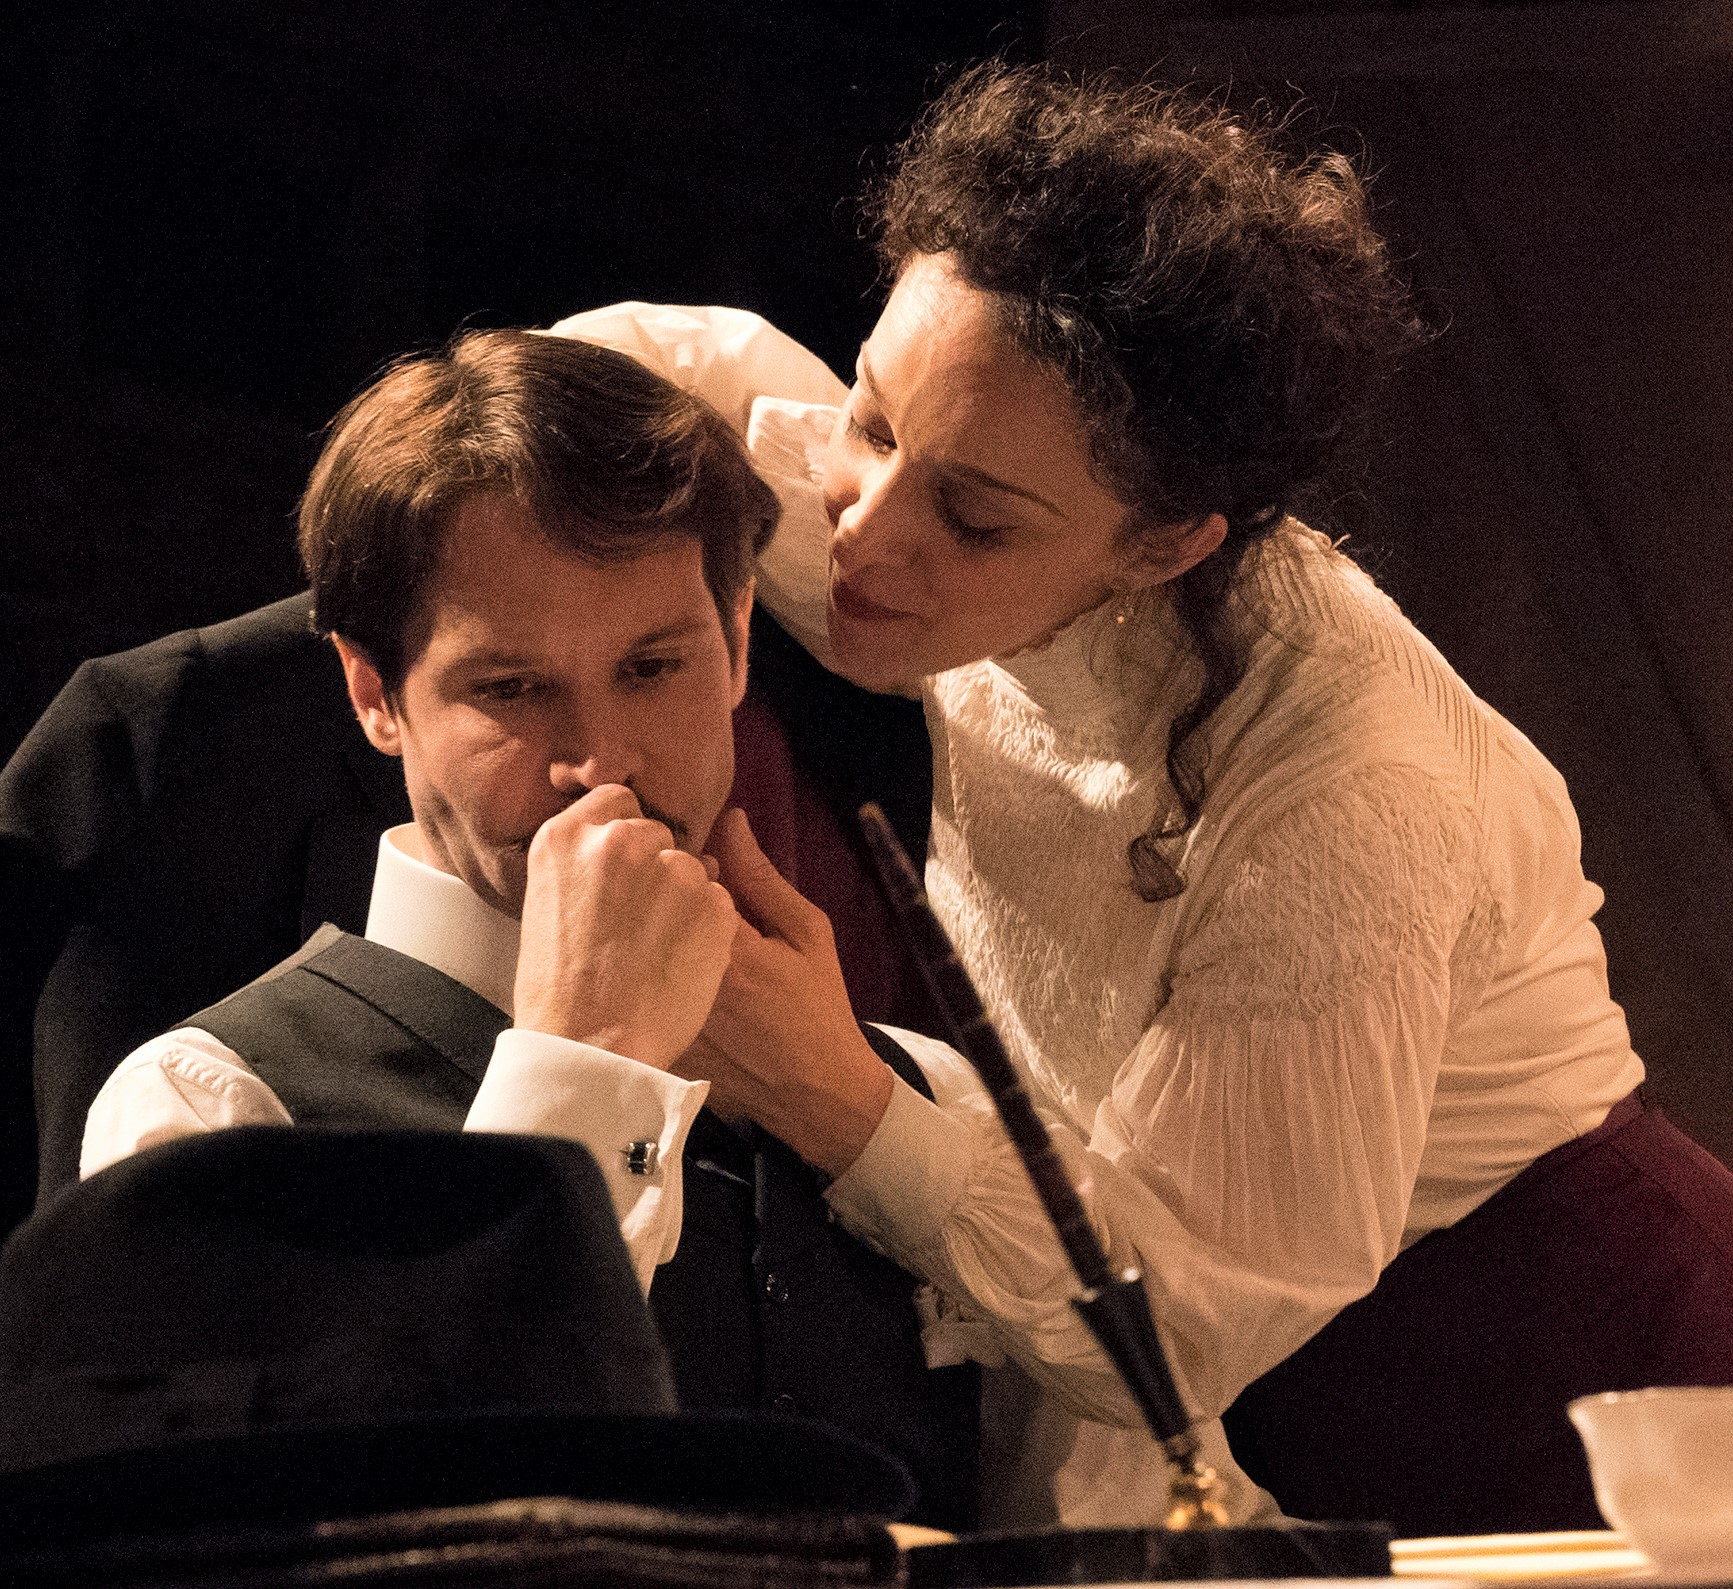 Rodrigo Lopresti (left) is Gabriele Torrisi and Cristina Spina is his muse, Eleonora Della Rosa, in Brandon Cole's  Imperfect Love , based on the lives of Gabriele D'Annunzio and Eleonora Duse. Top: Ed Malone (left) is the clown Marco, and David O'Hara is his cohort Beppo.